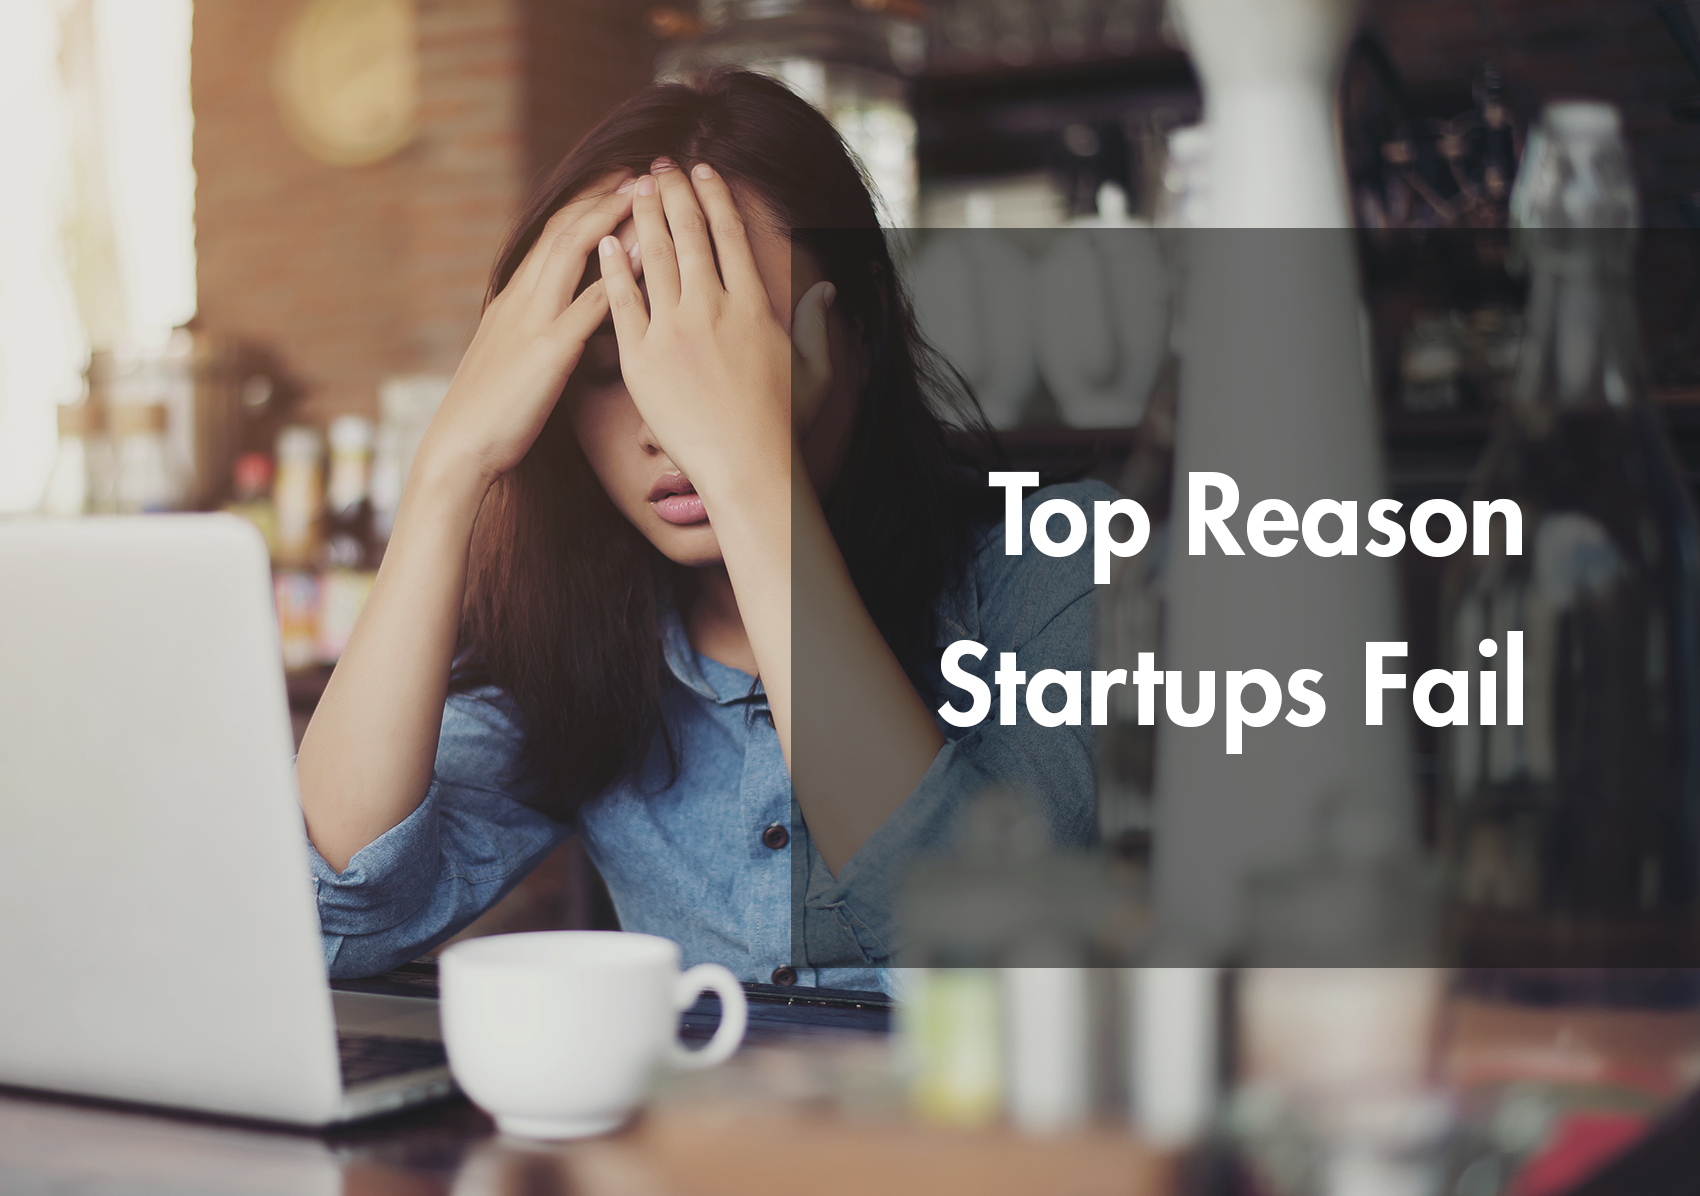 Top Reason Startups Fail: Not Finding the Right Talent